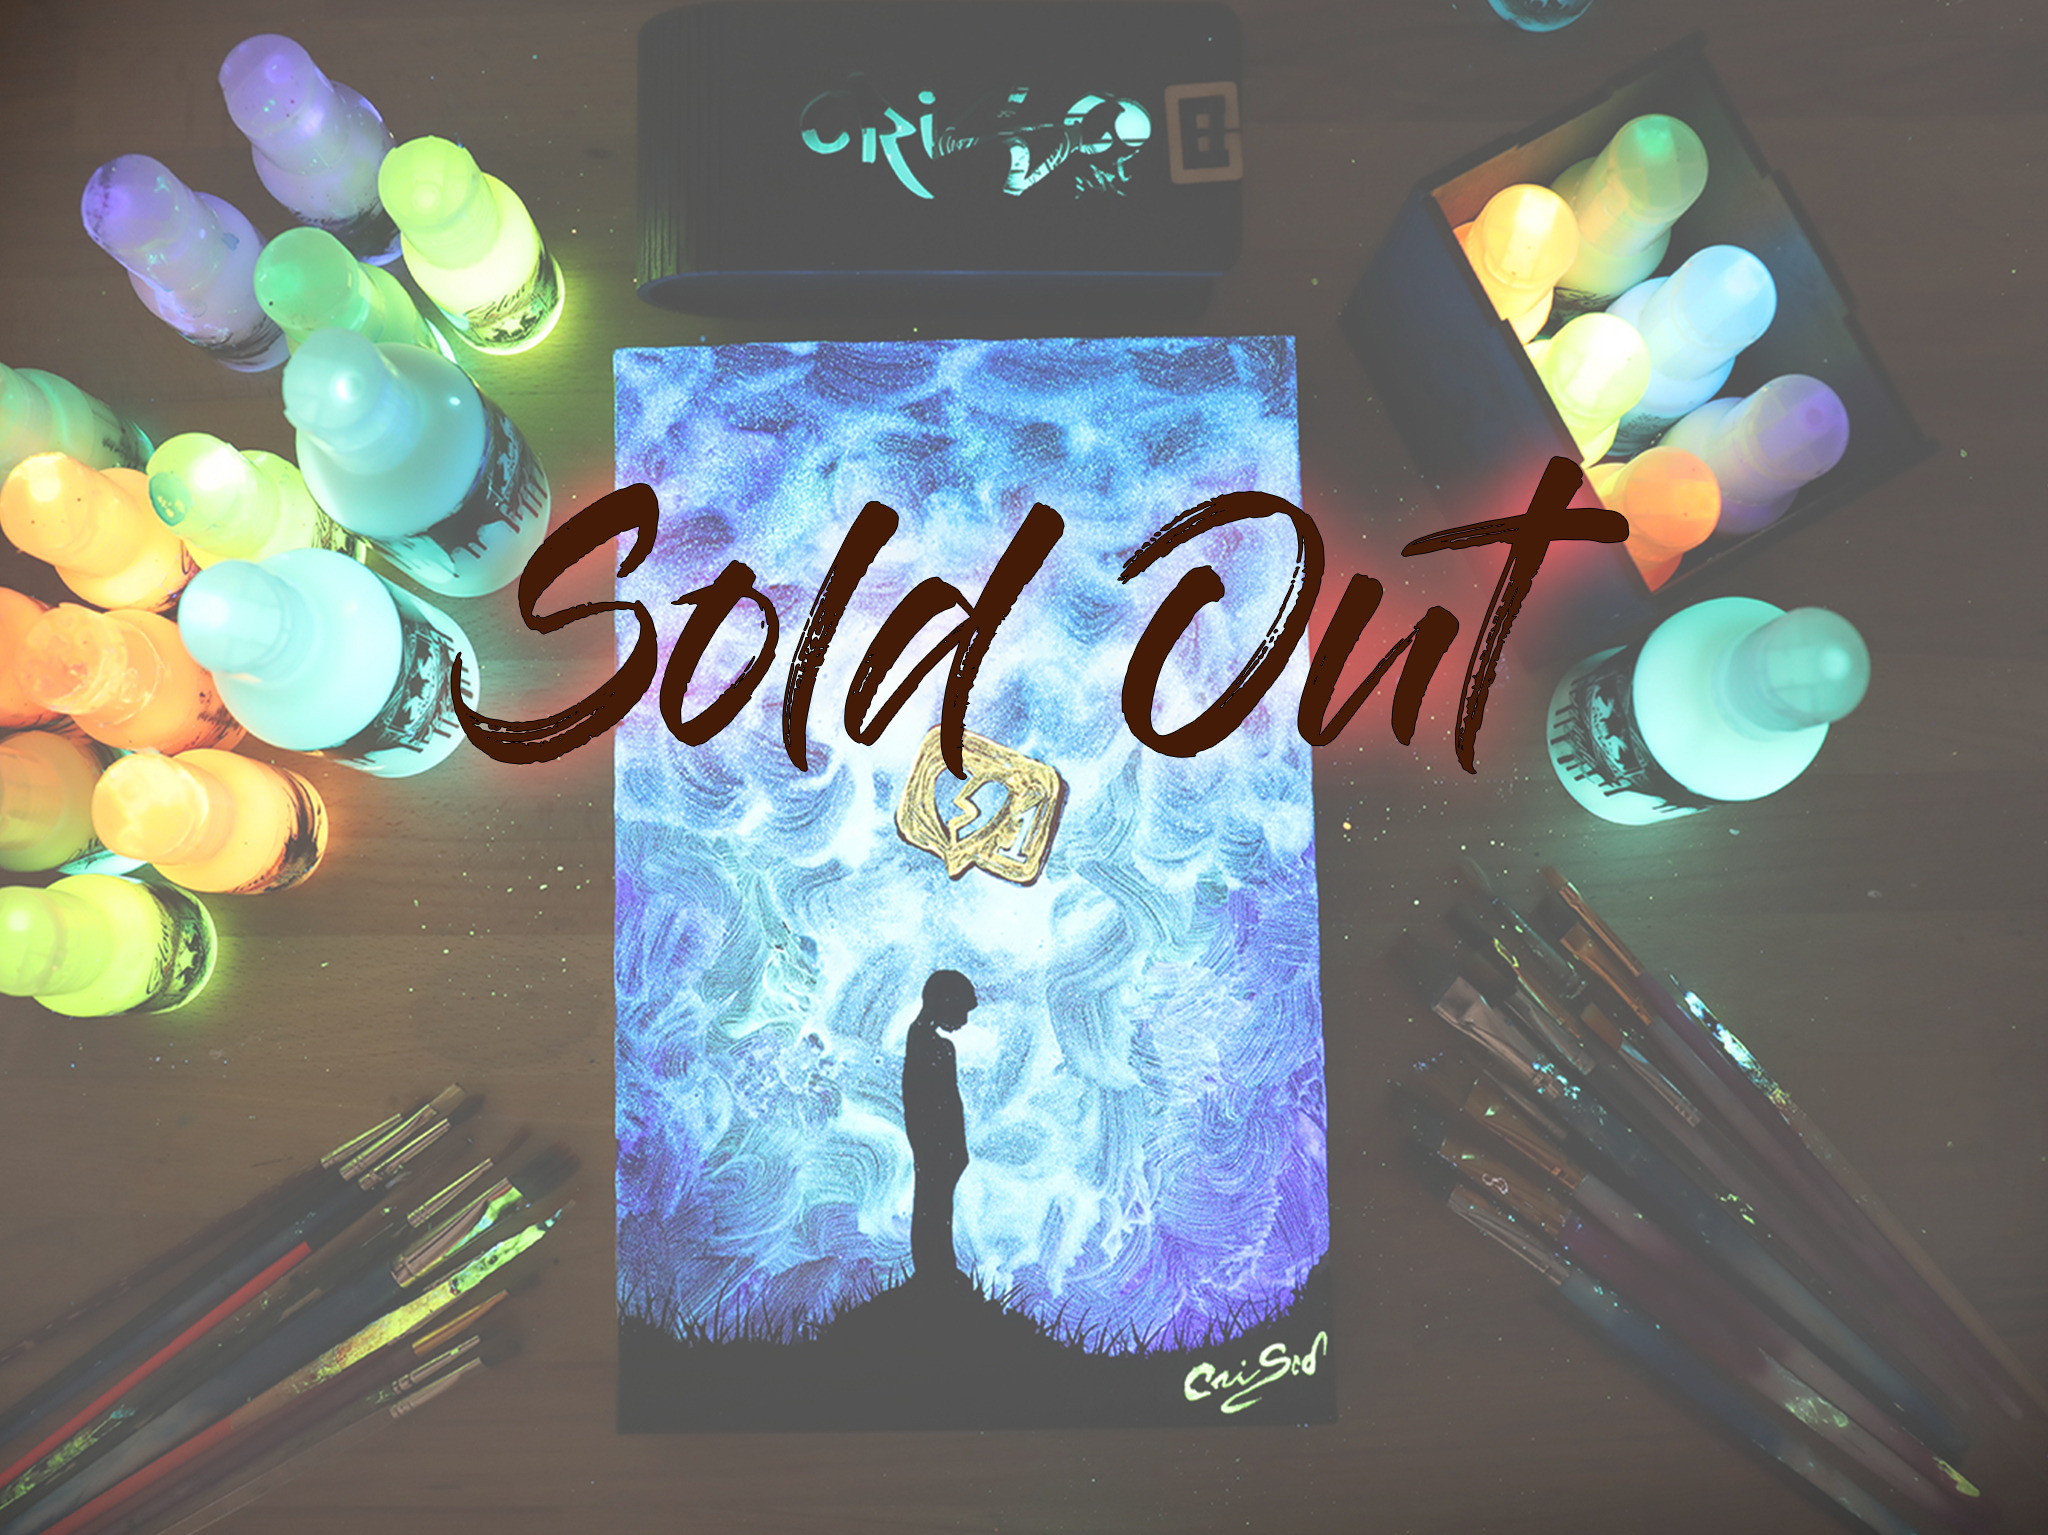 sold out fileso